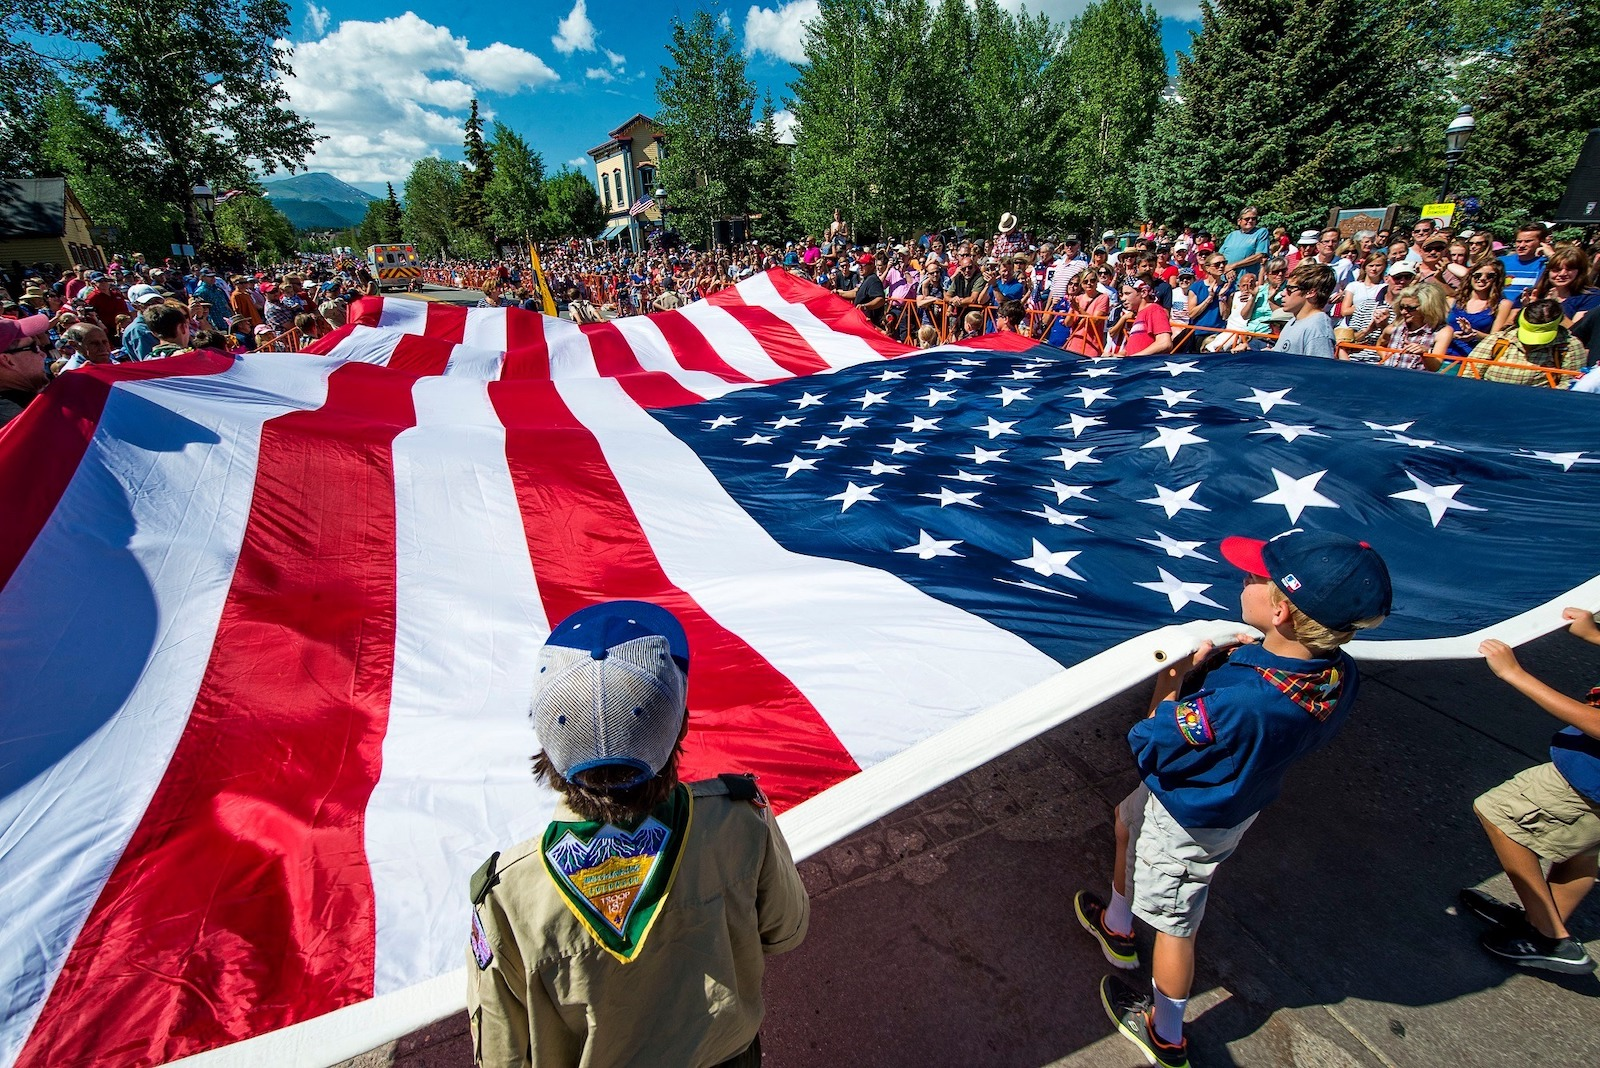 Image of kids holding the American flag for Independence Day in Breckenridge, Colorado